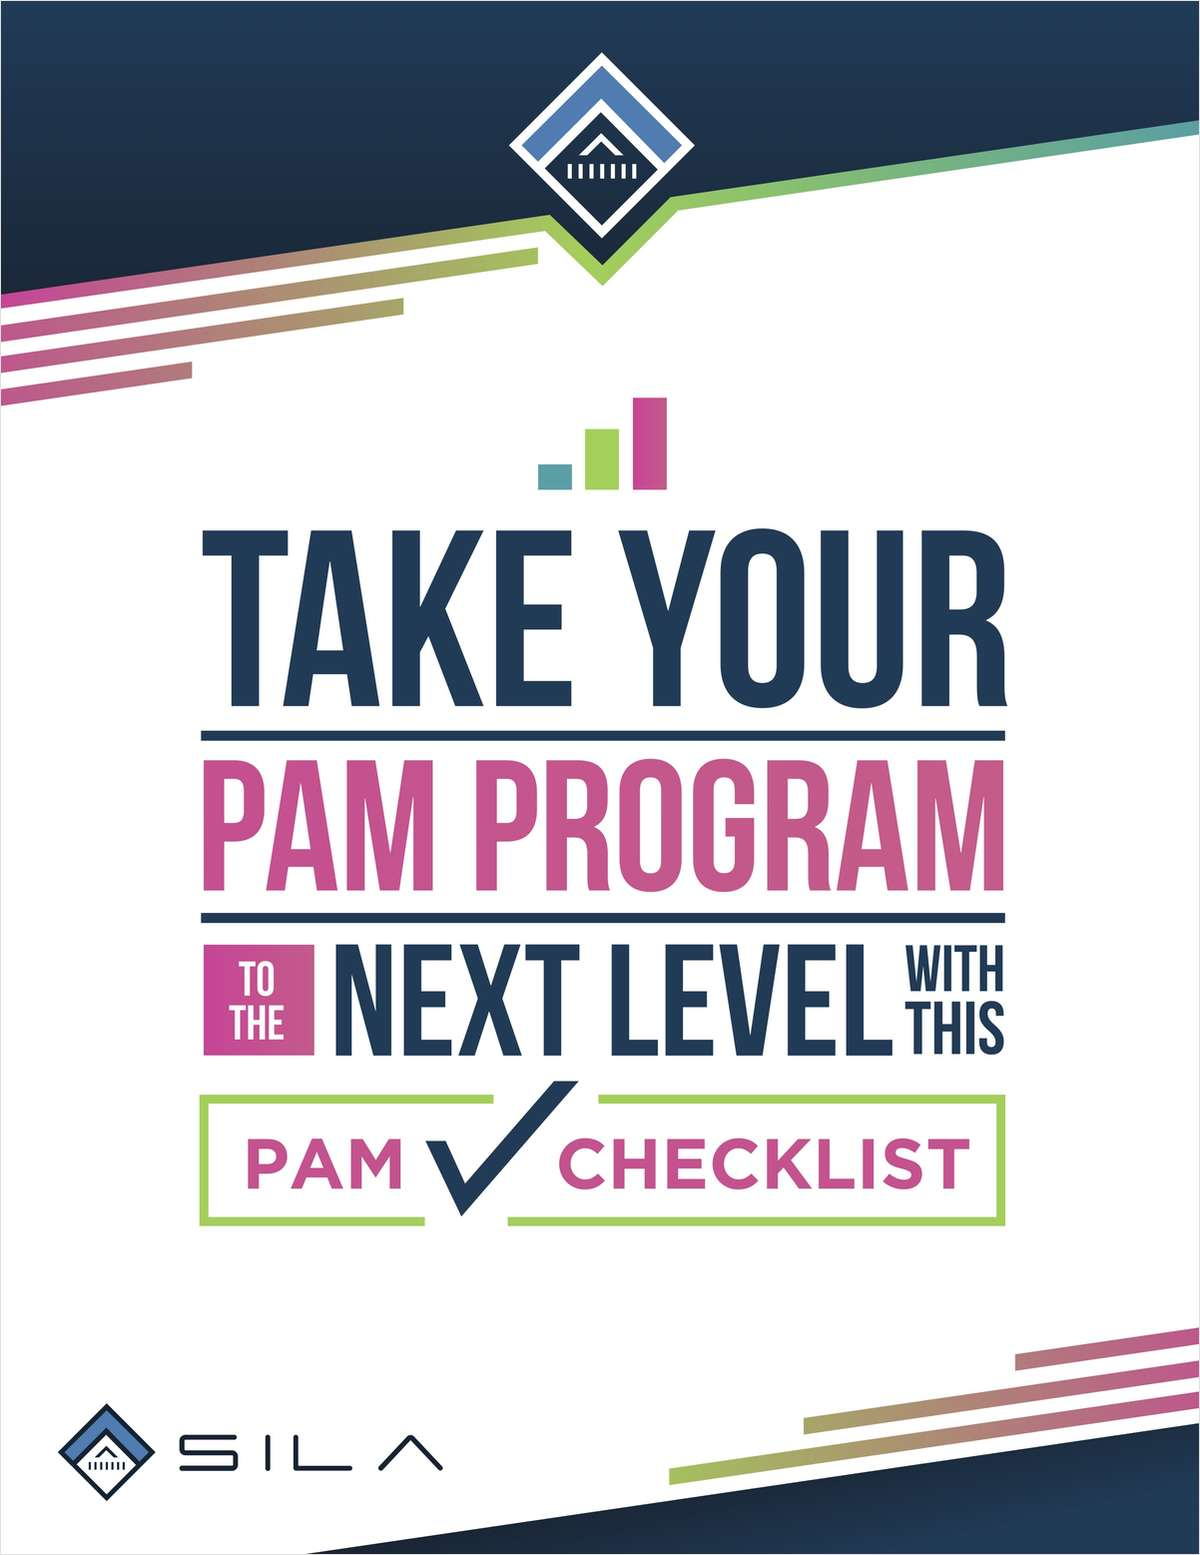 Checklist: Take Your PAM Program to the Next Level